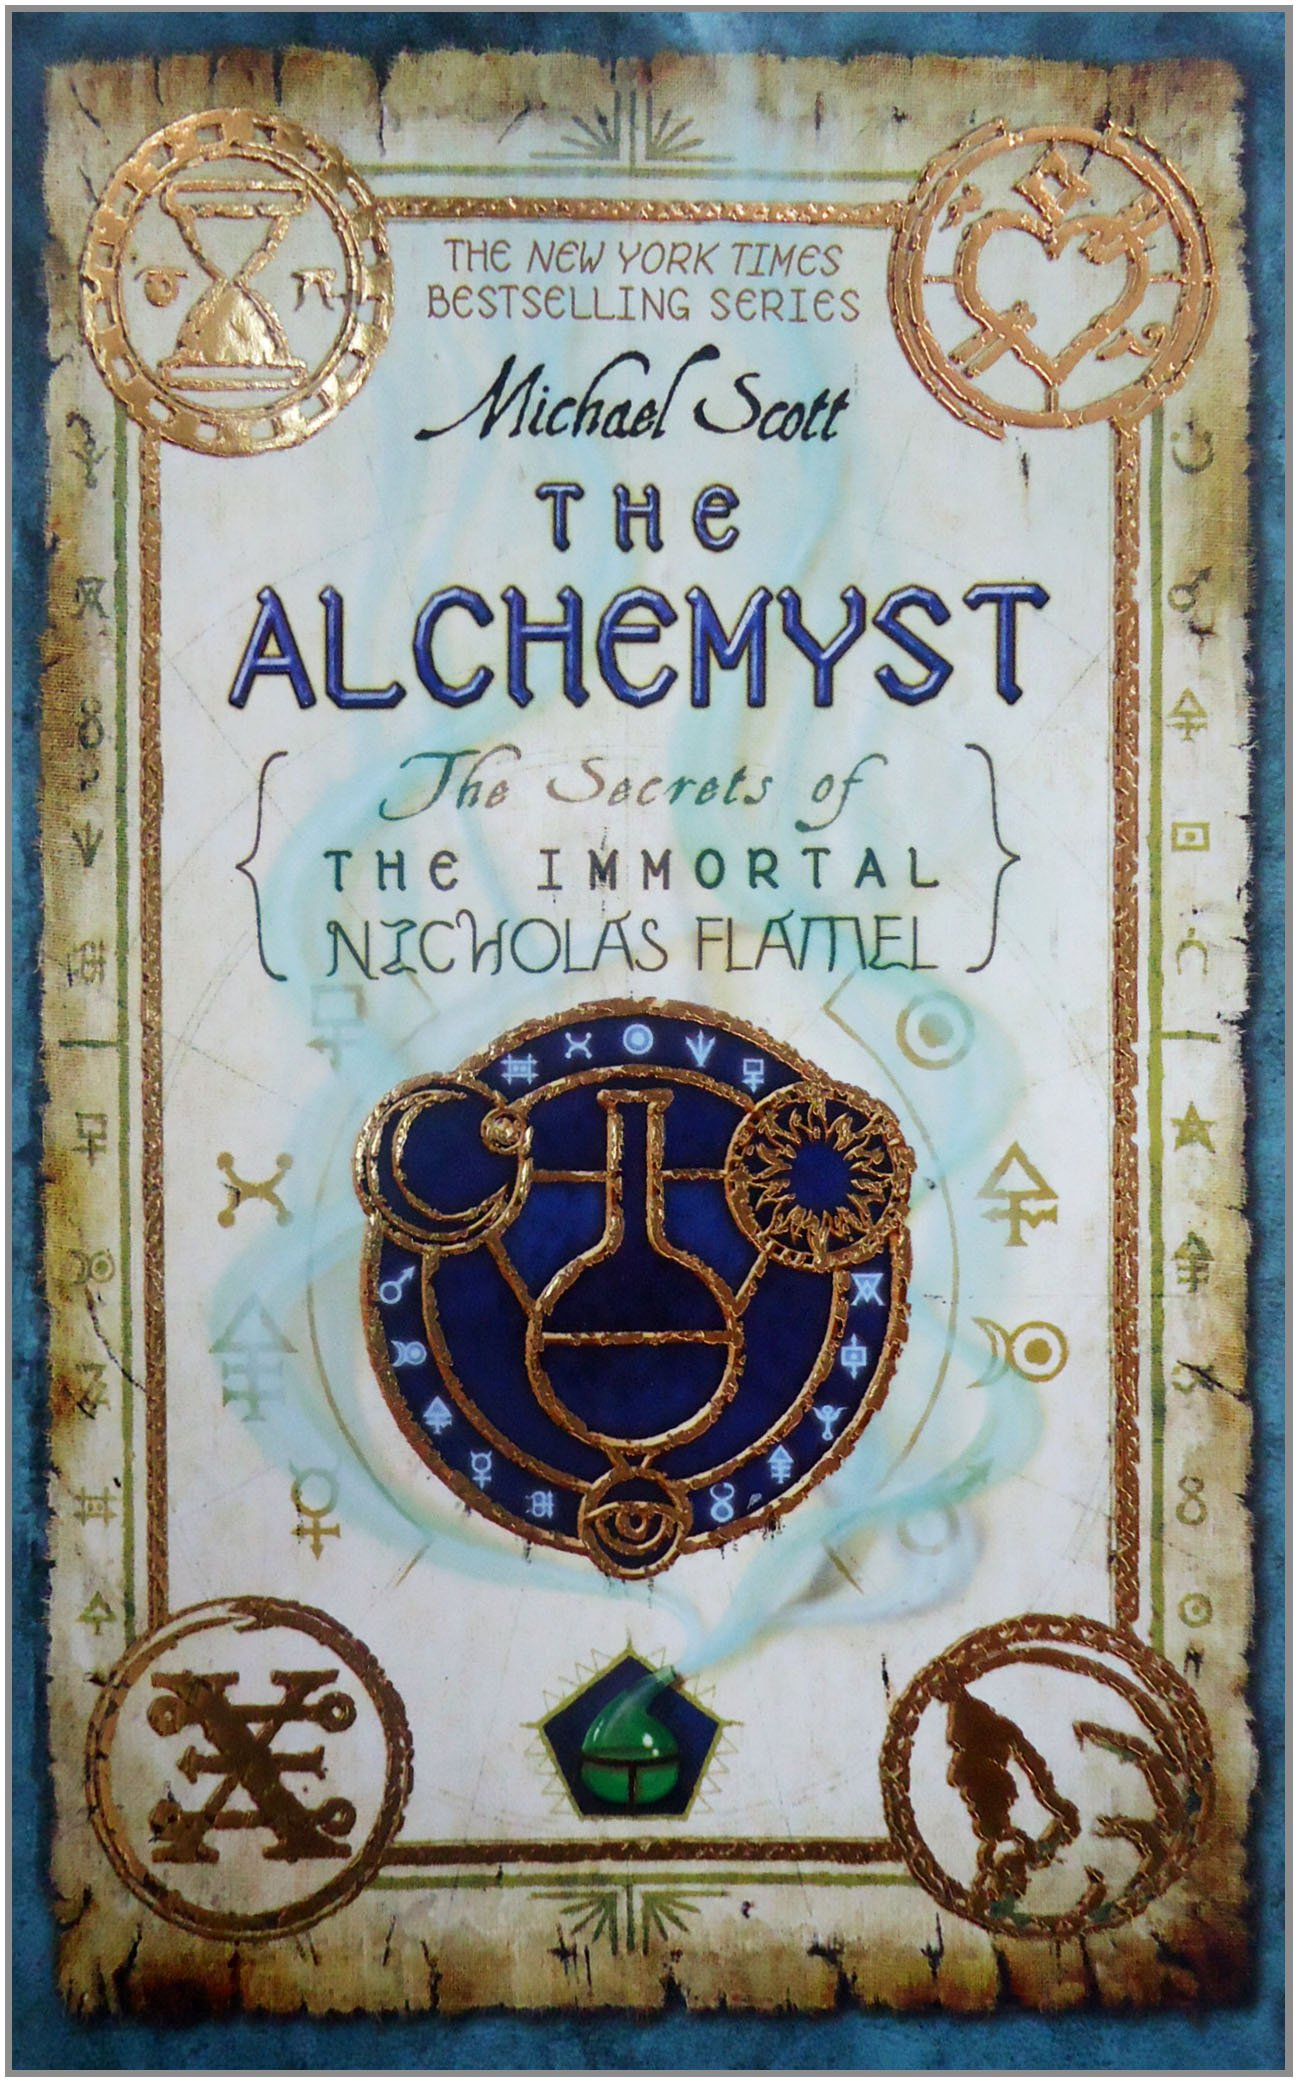 summary of novel alchemist alchemist buy alchemist by paulo coelho  com the alchemyst the secrets of the immortal nicholas com the alchemyst the secrets of the